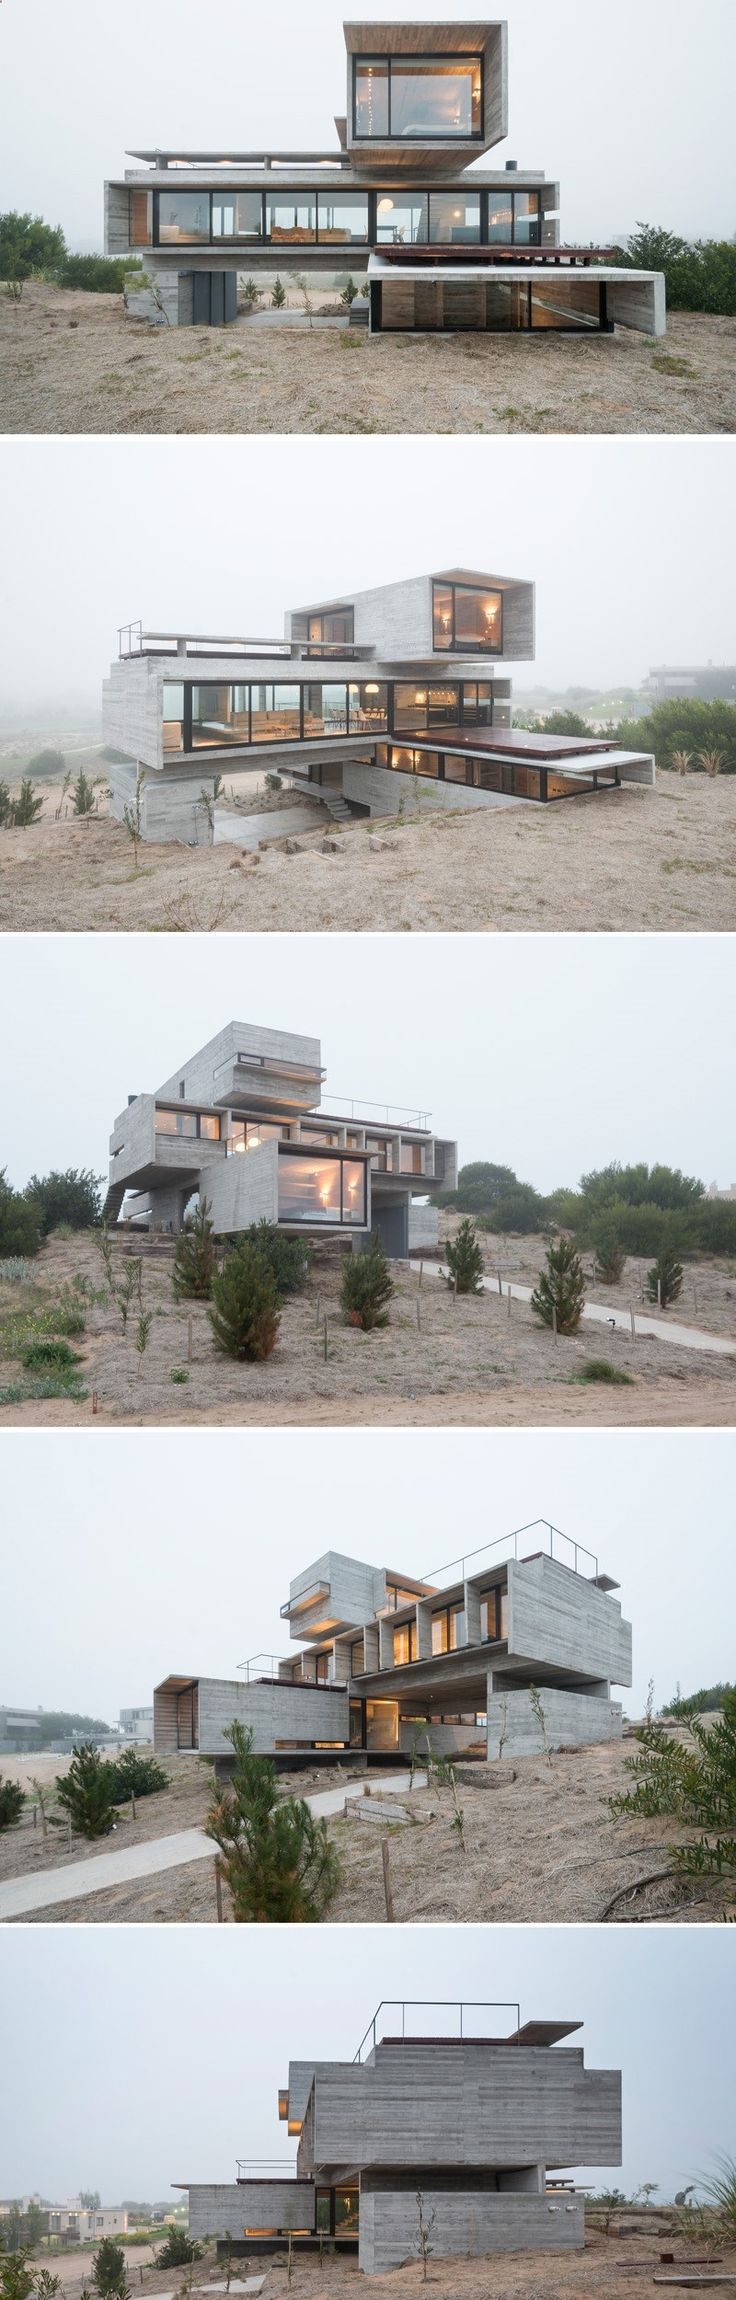 Container House - Architect Luciano Kruk designs a house made of three stacked forms of rough unfinished concrete overlooking a golf course in Argentina Who Else Wants Simple Step-By-Step Plans To Design And Build A Container Home From Scratch?